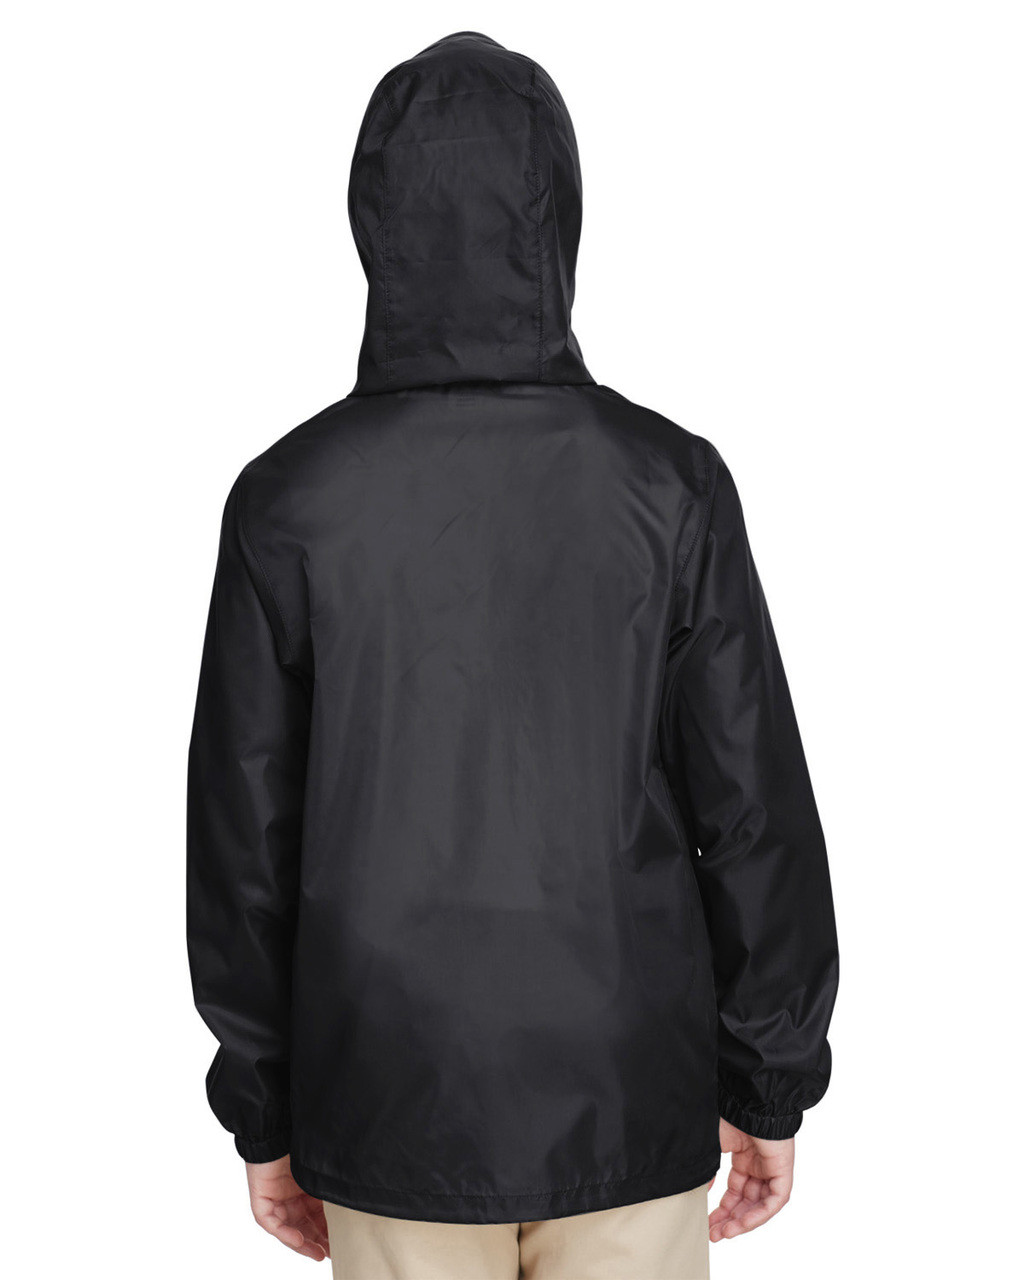 Black, Back - TT73Y Team 365 Youth Zone Protect Lightweight Jacket  | BlankClothing.ca